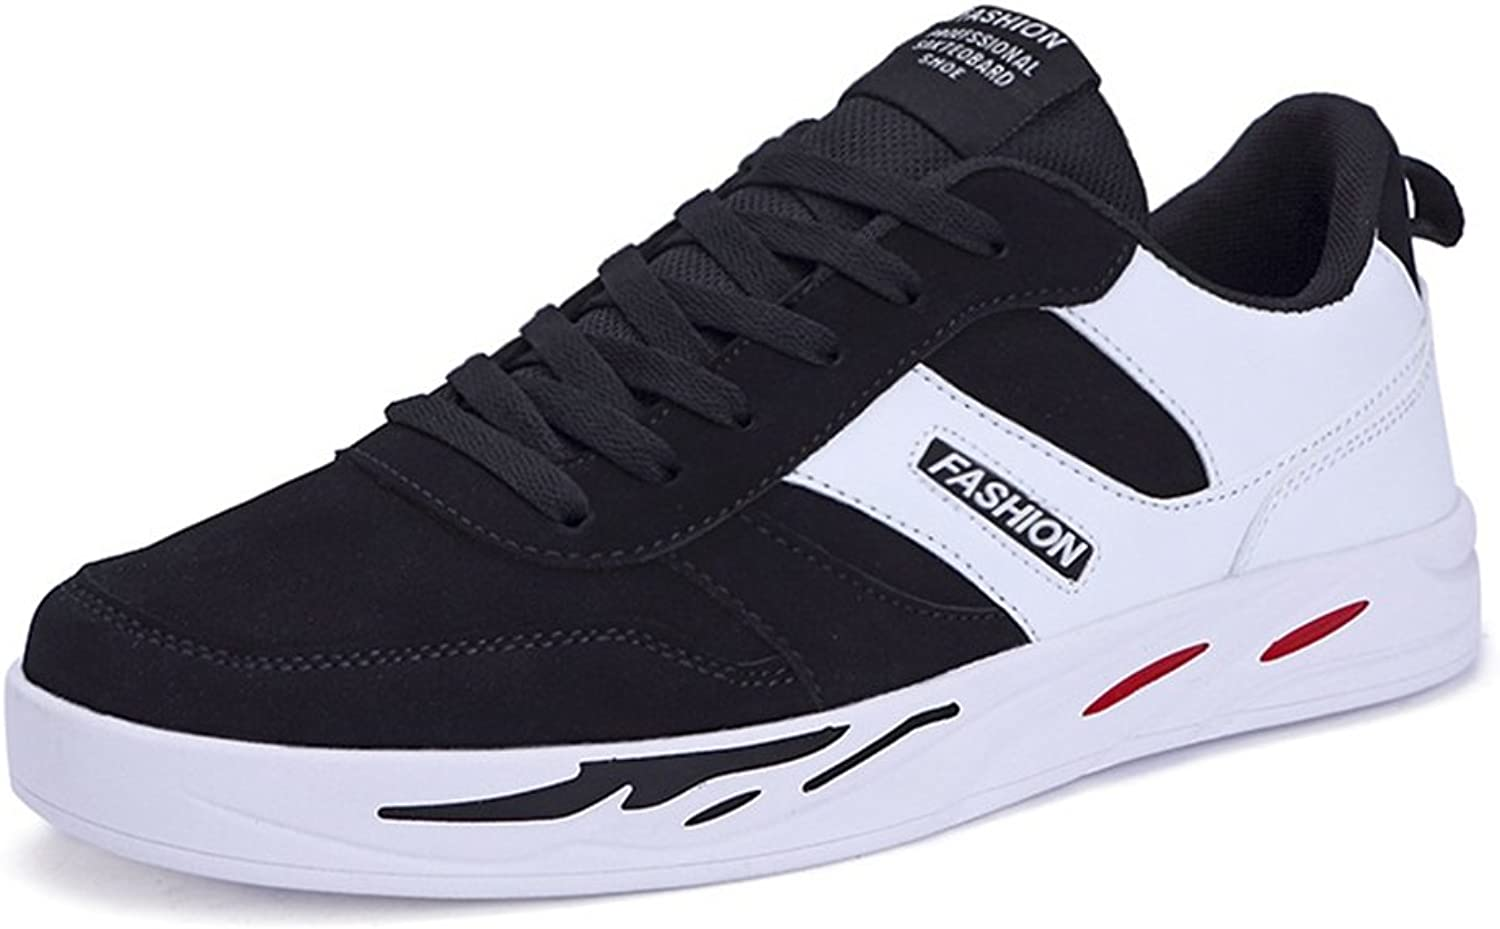 XTIANUK Mens Casual Canvas shoes Sport Non Slip Flat Teenagers Youth Boys Black White Pumps Size 5-10 UK